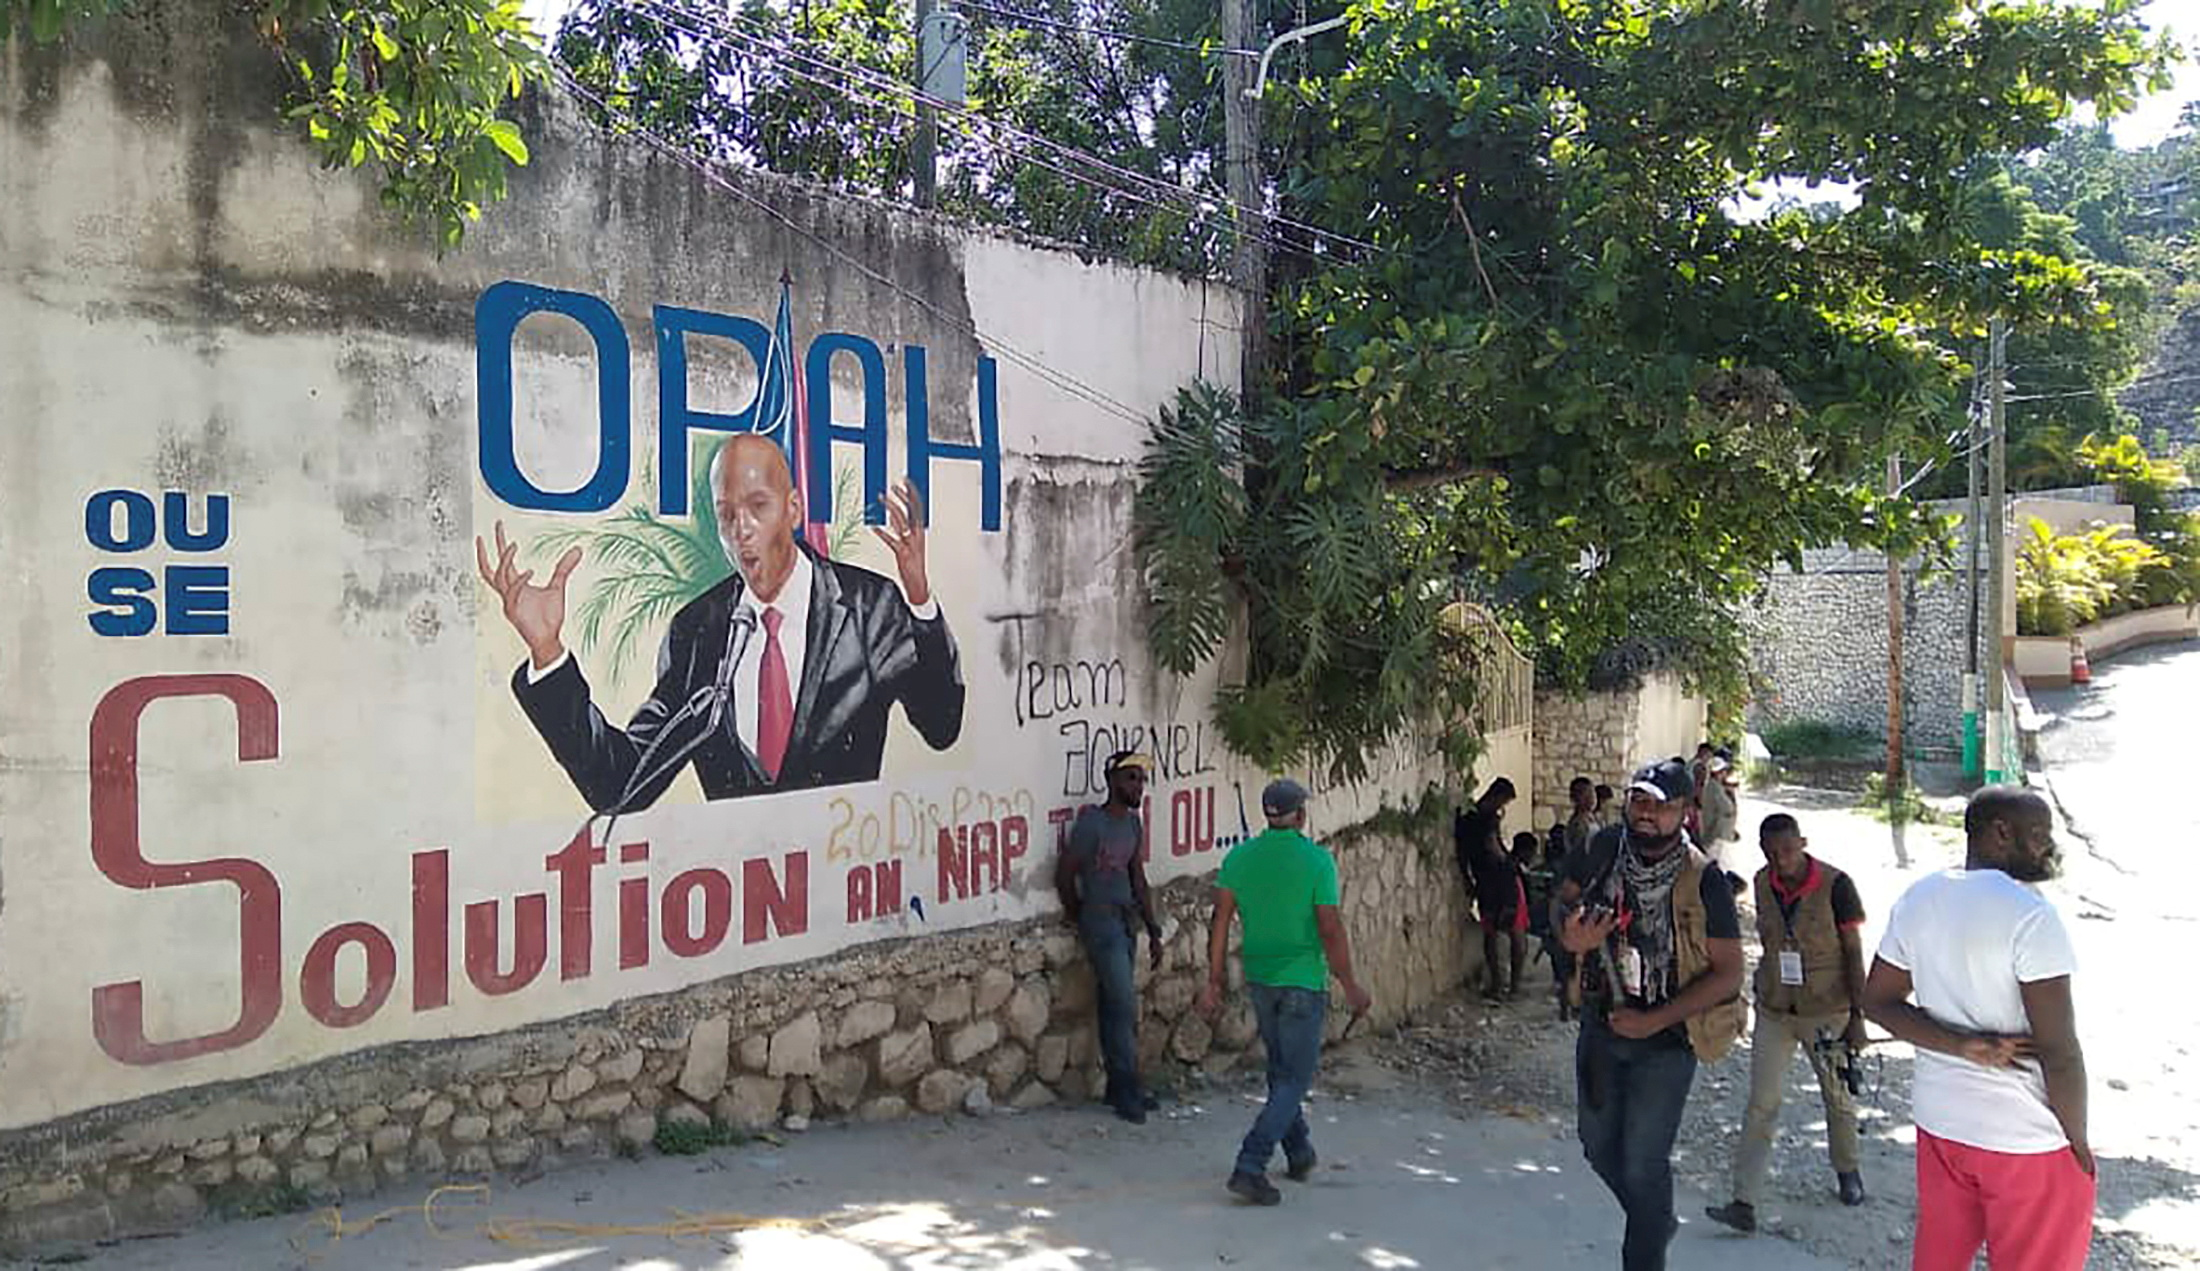 People walk past a wall with a mural depicting Haiti's President Jovenel Moise, after he was shot dead by unidentified attackers in his private residence, in Port-au-Prince, Haiti July 7, 2021. REUTERS/Robenson Sanon